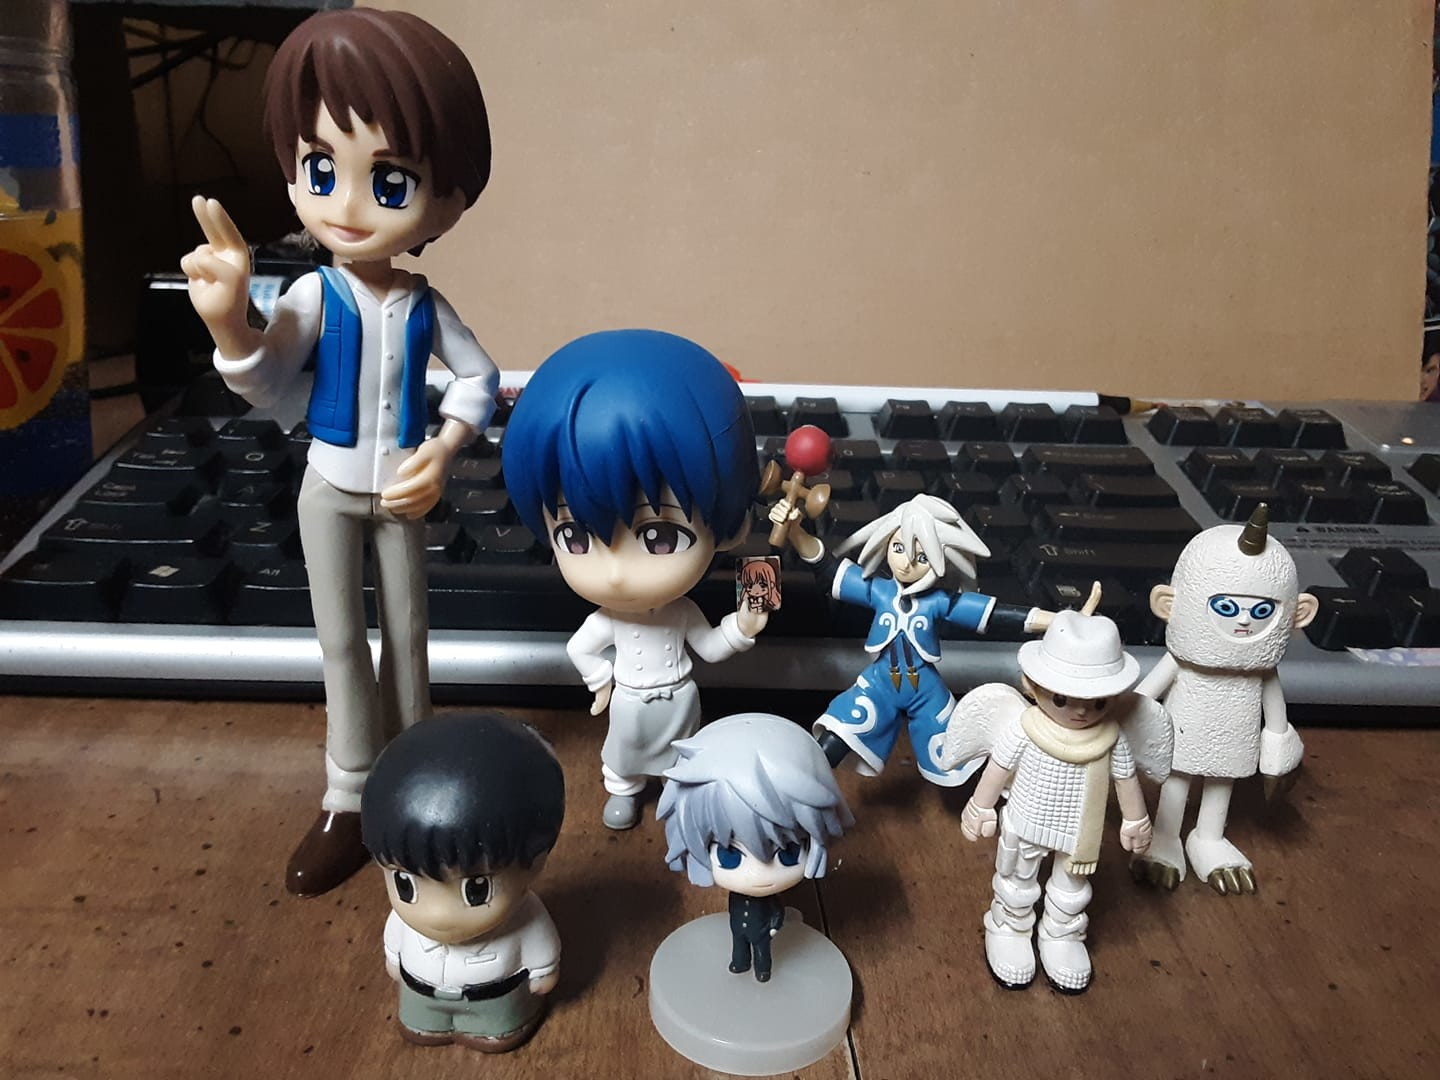 https://static.myfigurecollection.net/upload/pictures/2021/02/28/2647407.jpeg